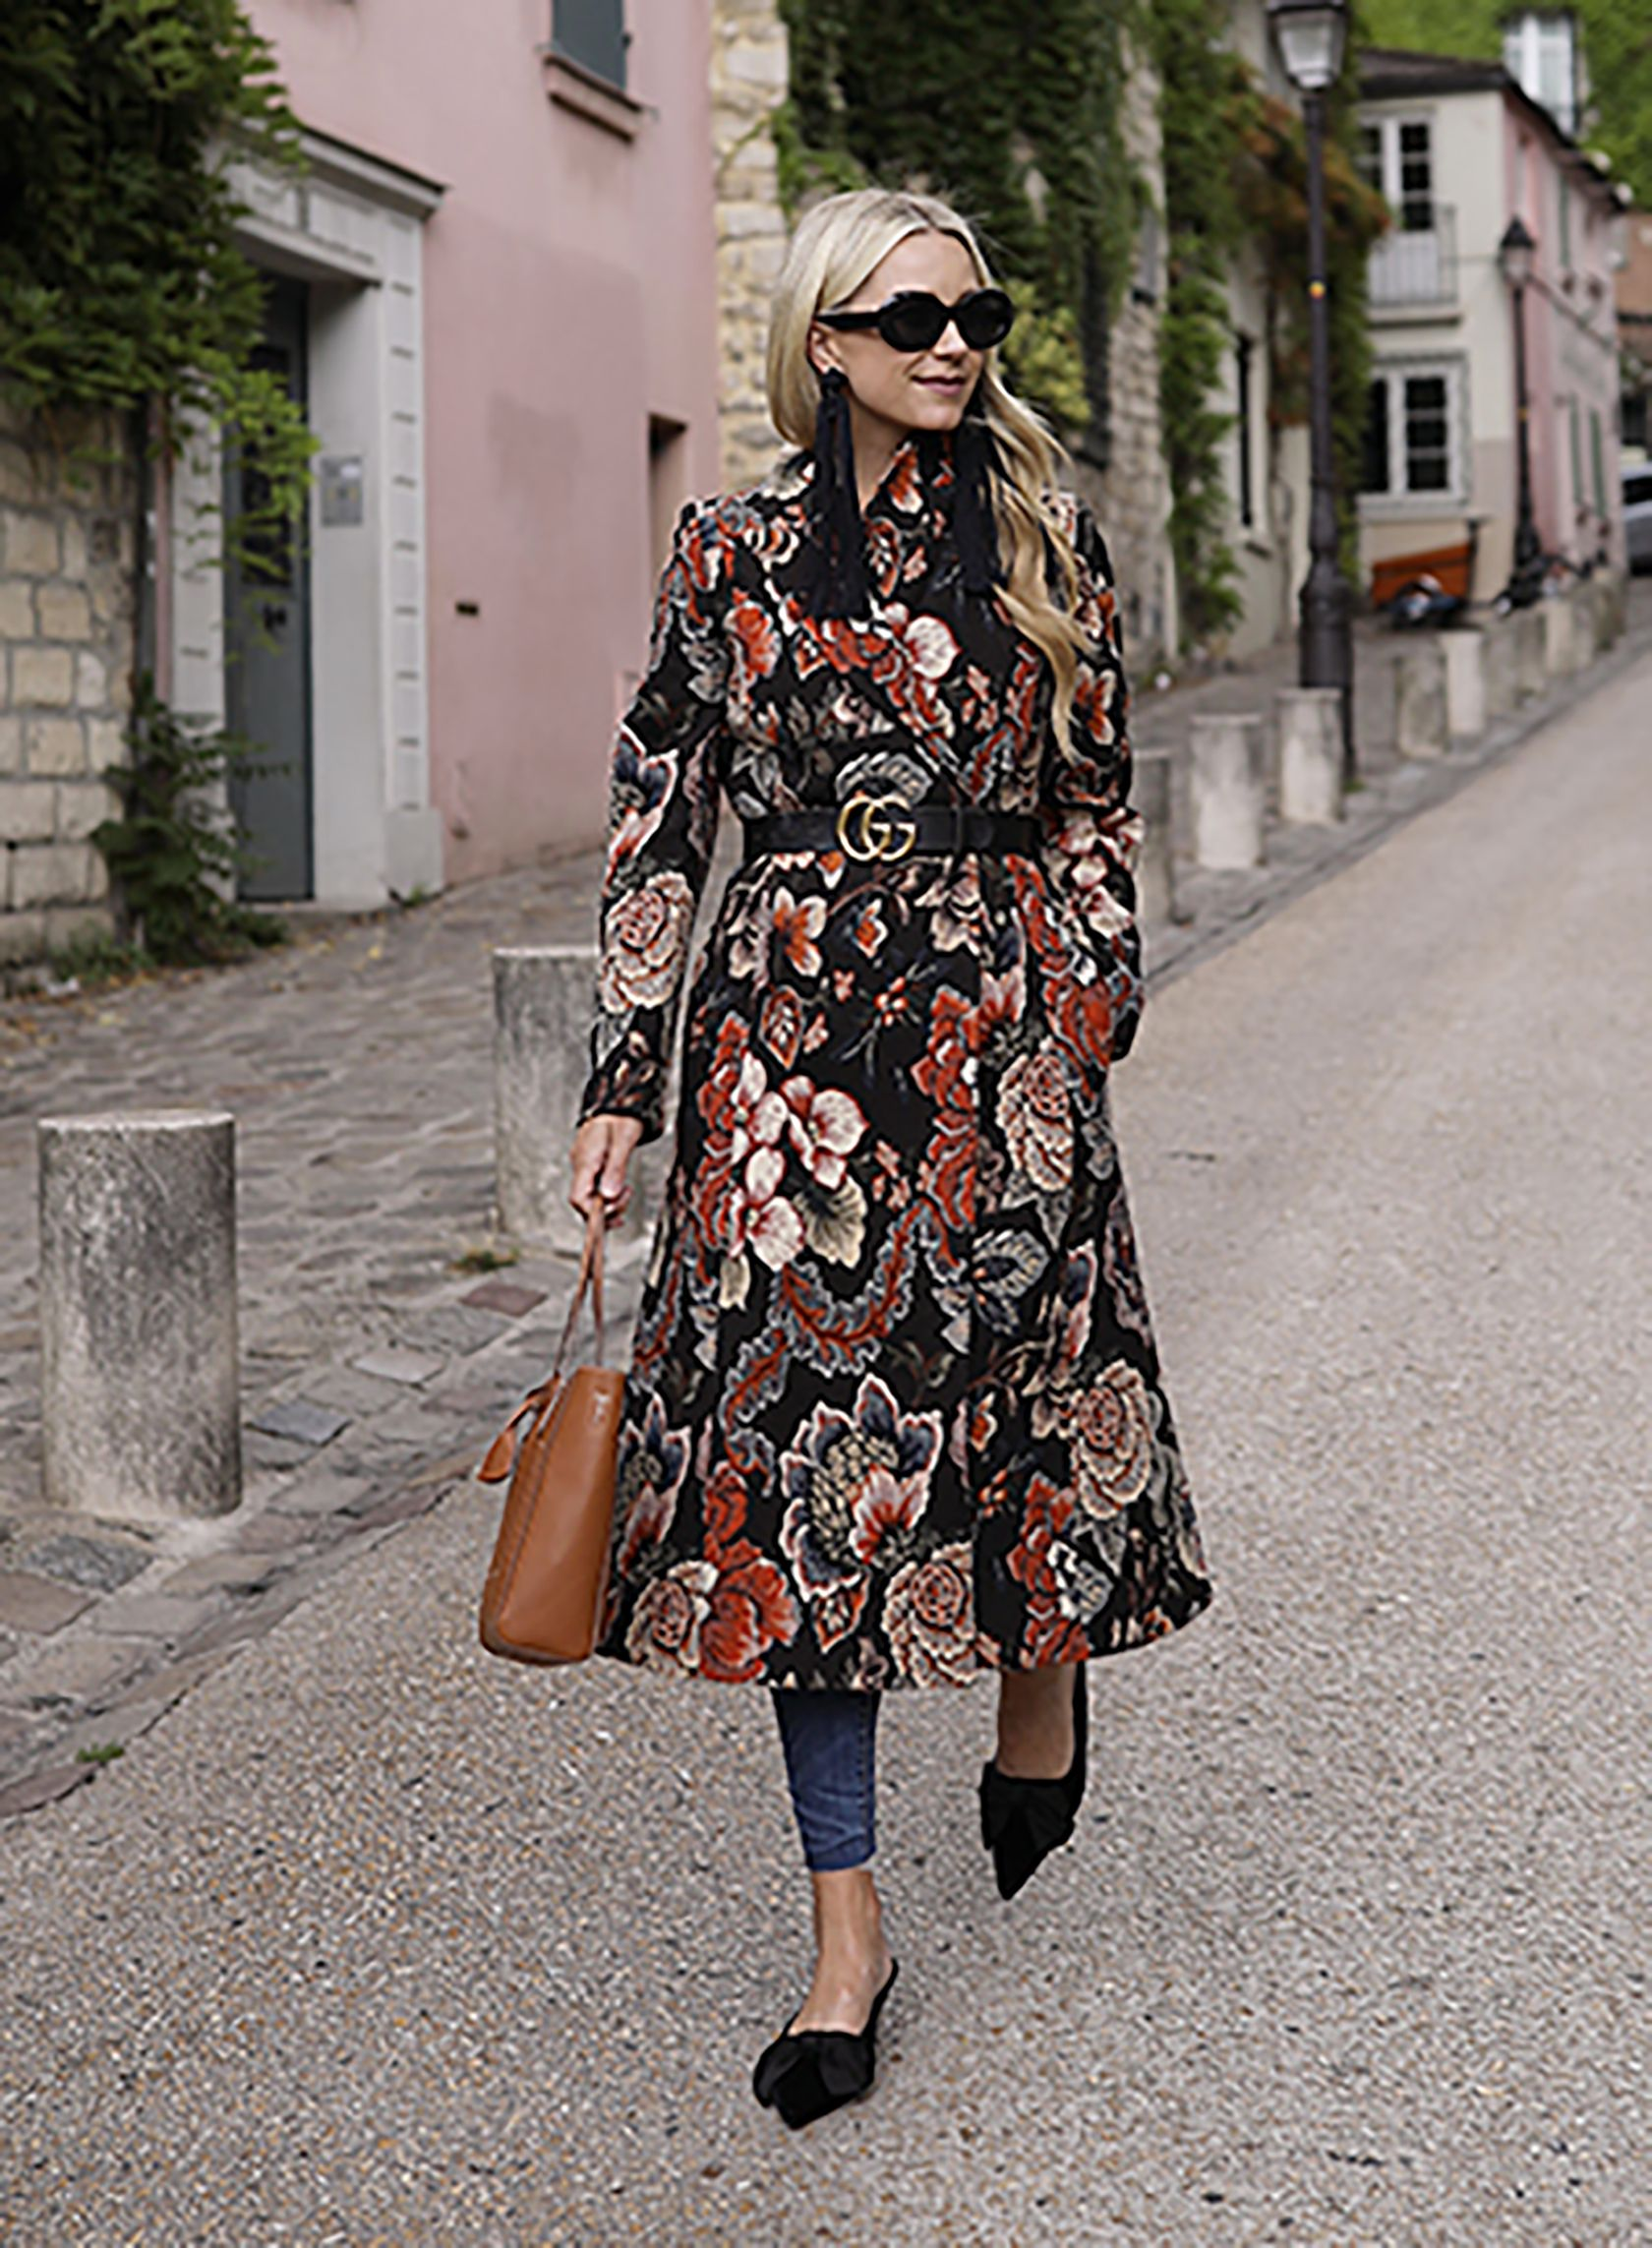 f903ef3bc42 Sydne Style shows how to wear a black gucci belt with outfit ideas from fashion  blogger atlantic pacifice  gucci  belts  bloggerstyle  outfits  outfitideas